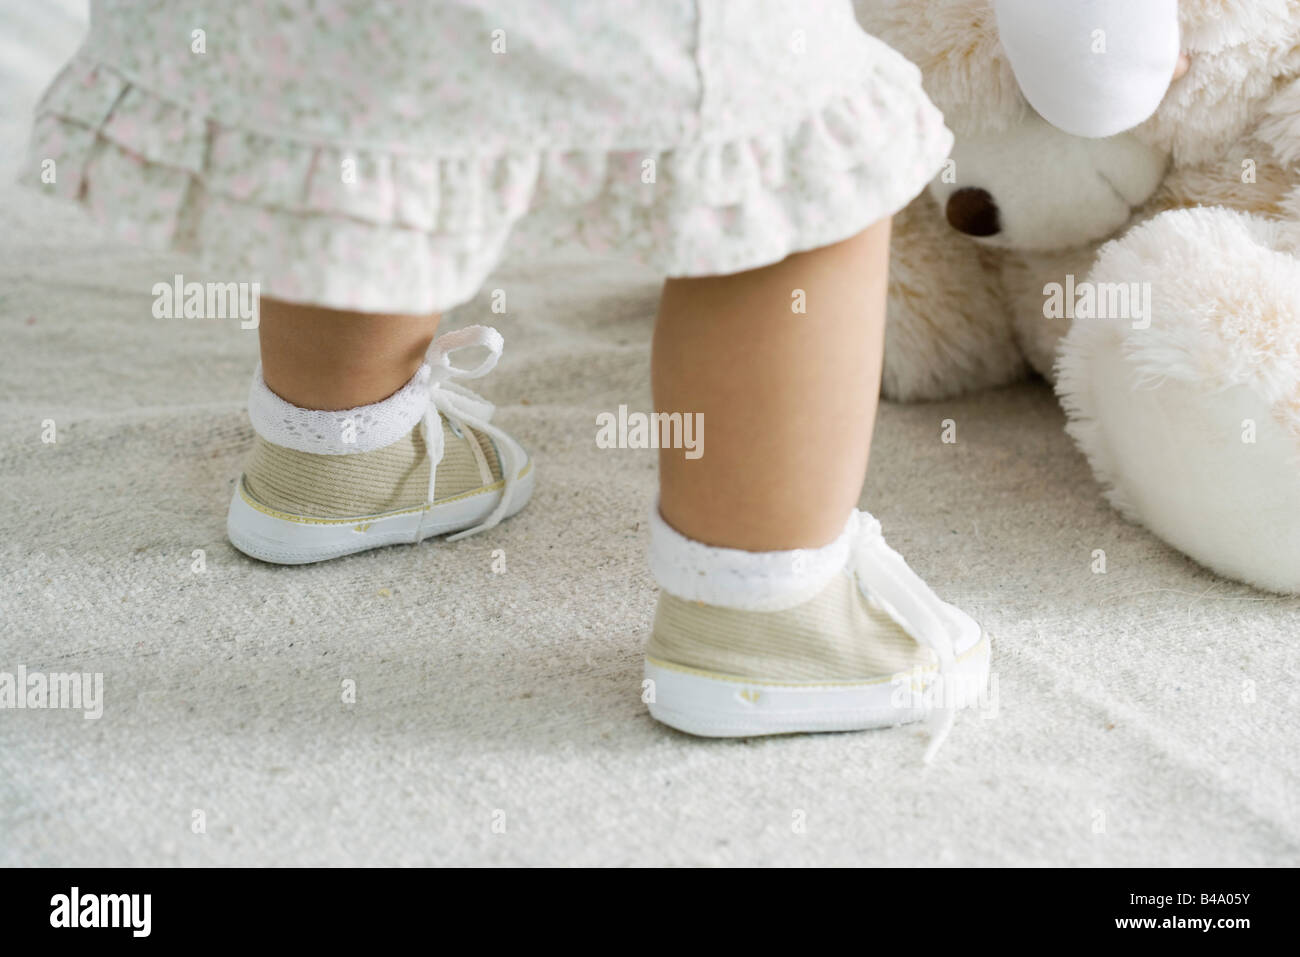 Toddler girl bending over stuffed toy, cropped view - Stock Image